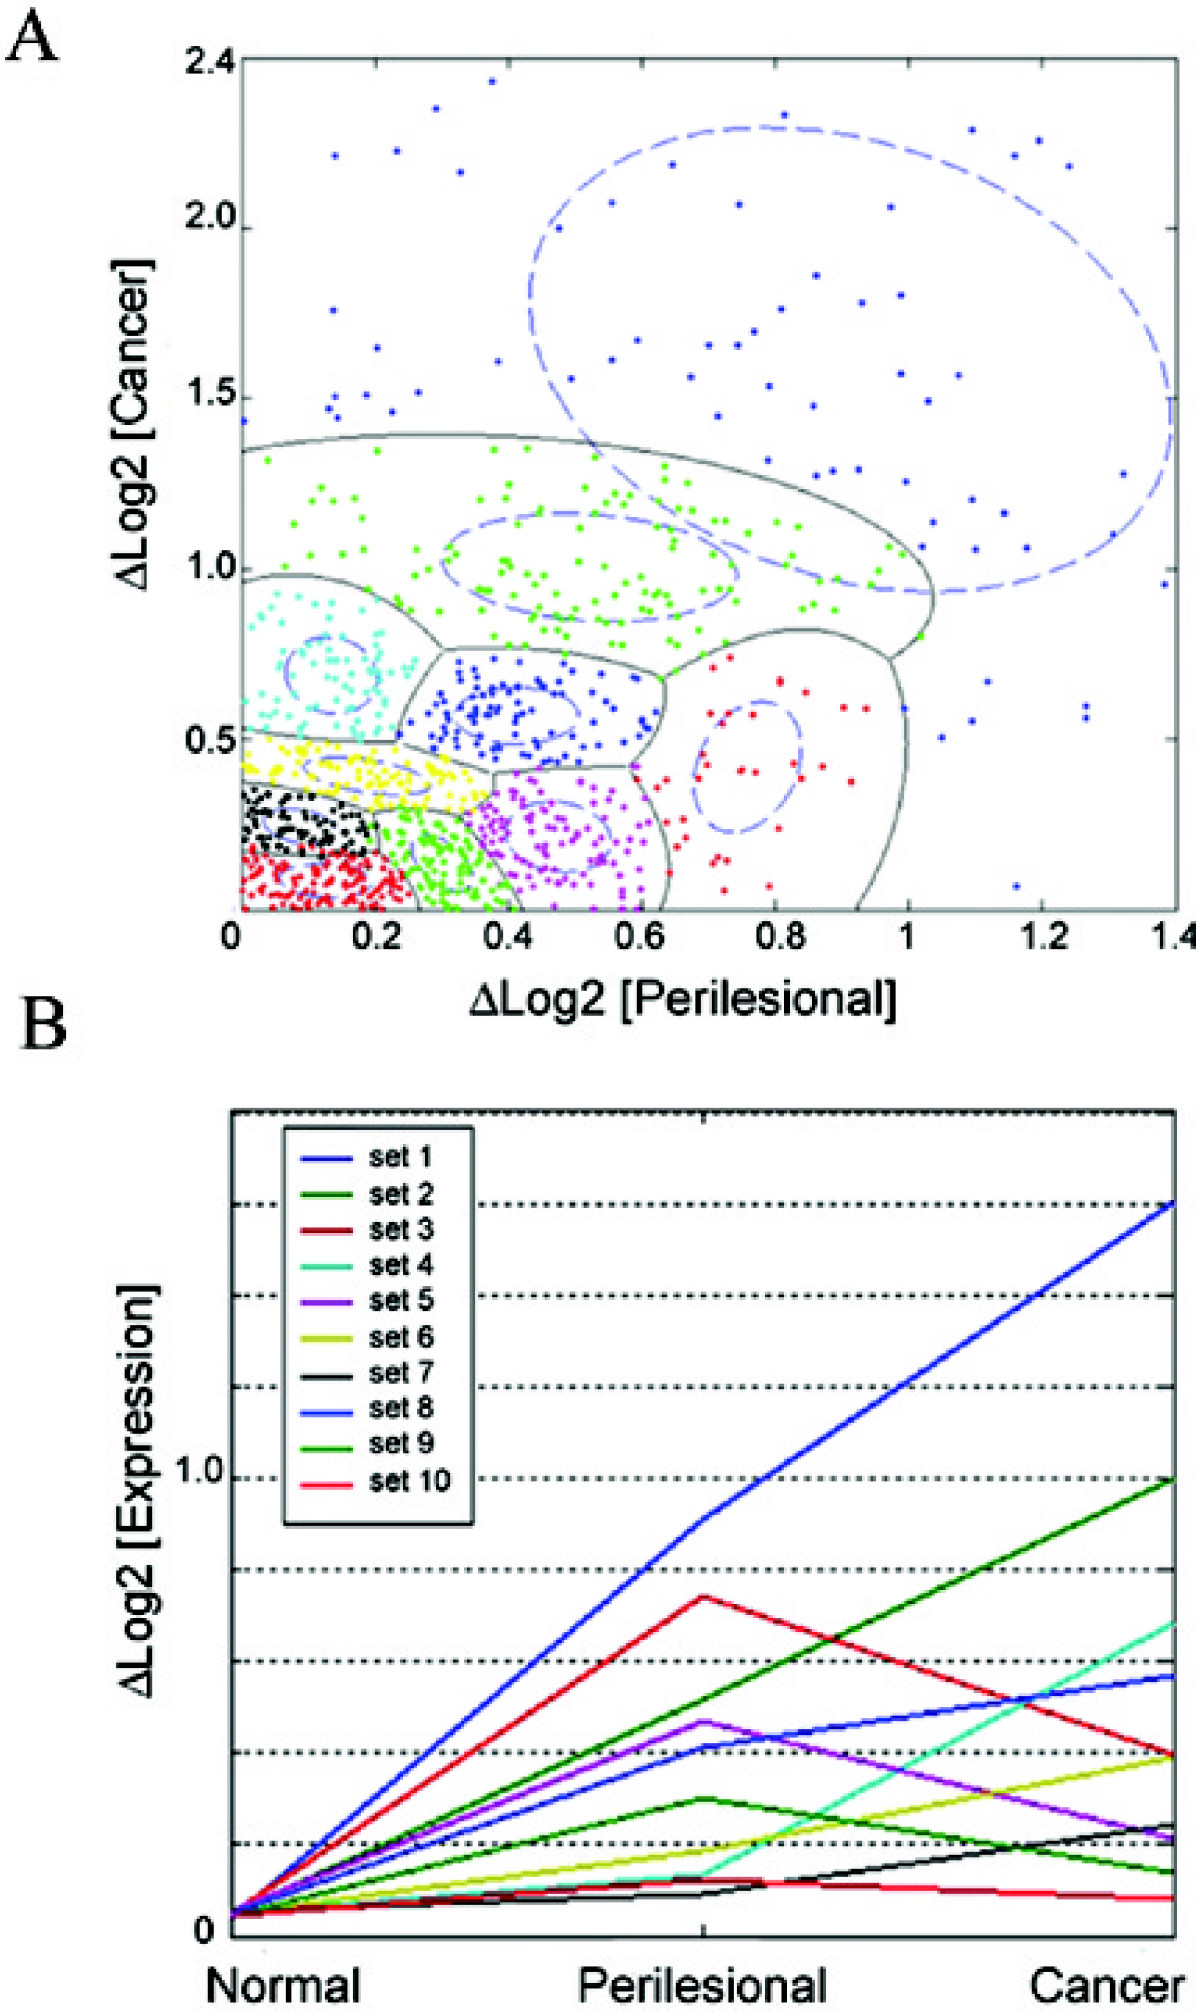 http://static-content.springer.com/image/art%3A10.1186%2F1471-2105-10-66/MediaObjects/12859_2008_Article_2796_Fig2_HTML.jpg